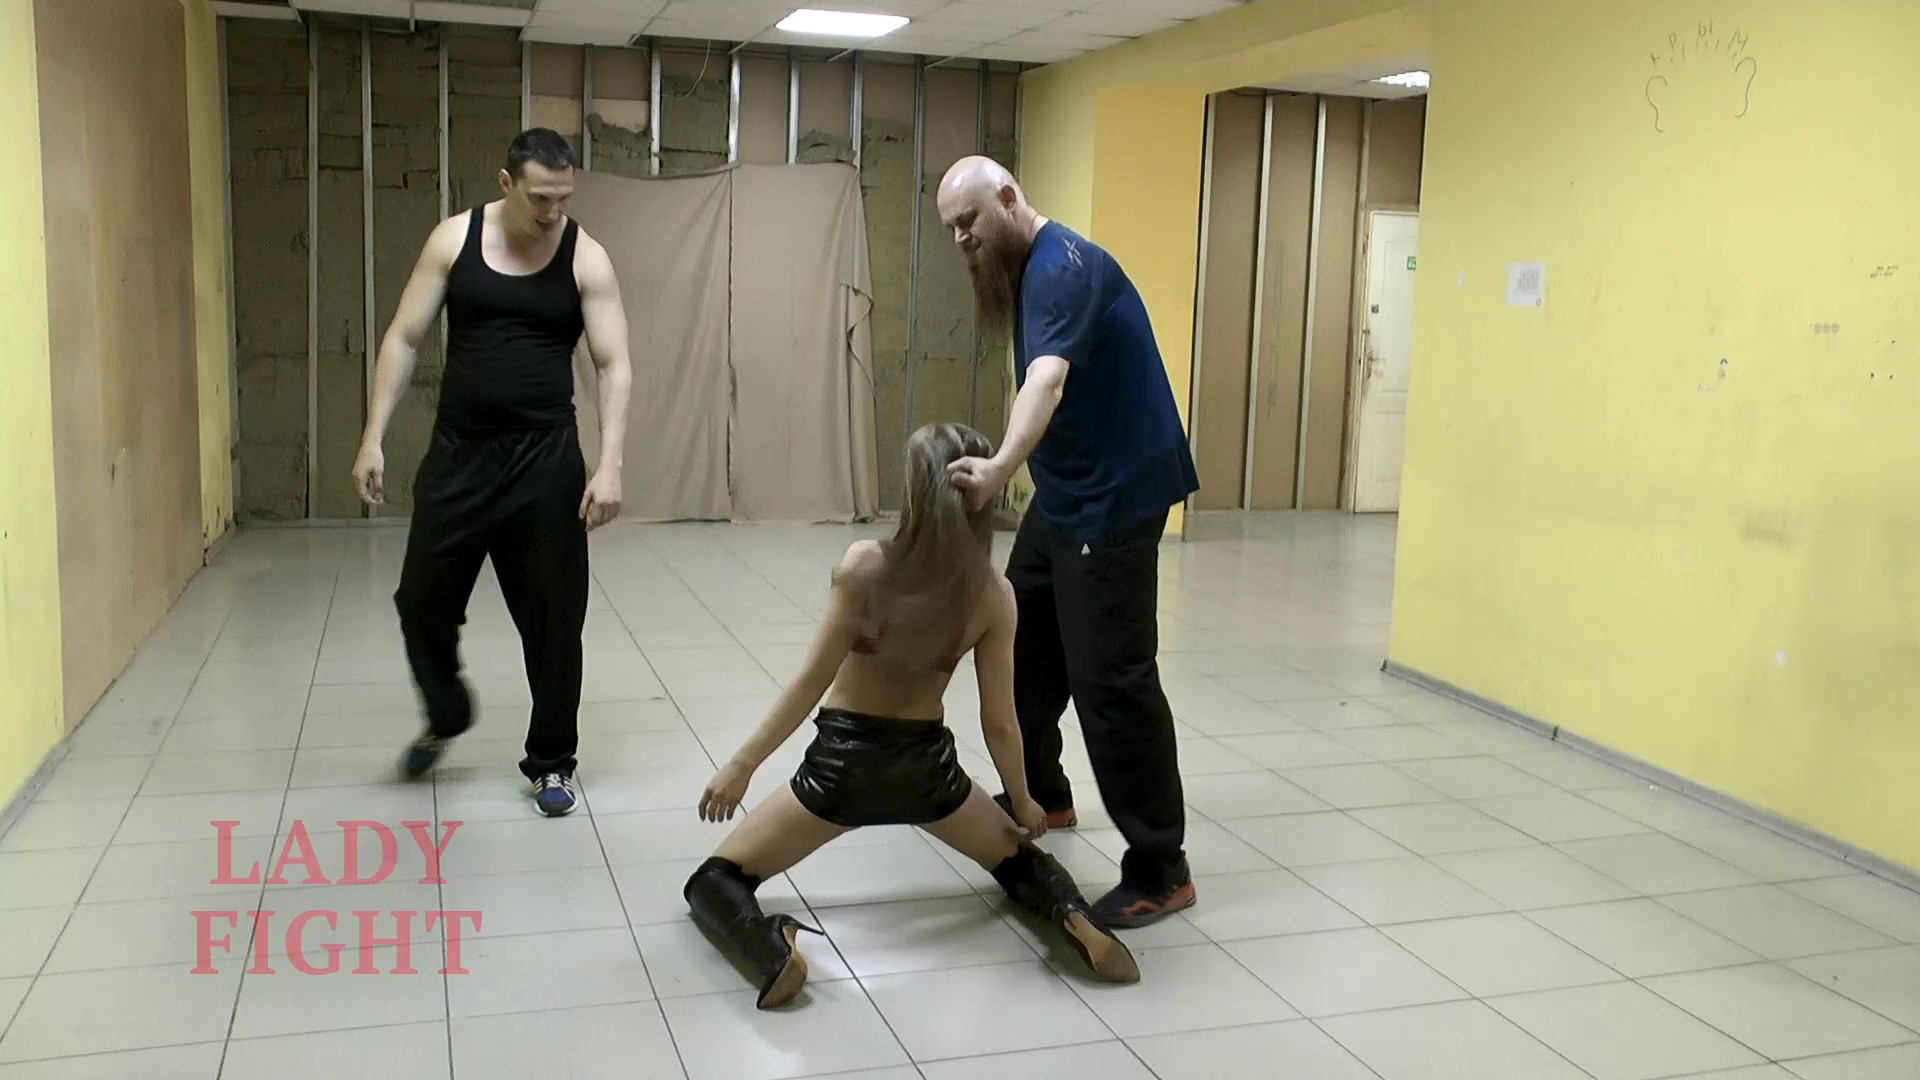 LADYFIGHT-Deadly-Wrestling-For-Lora-28